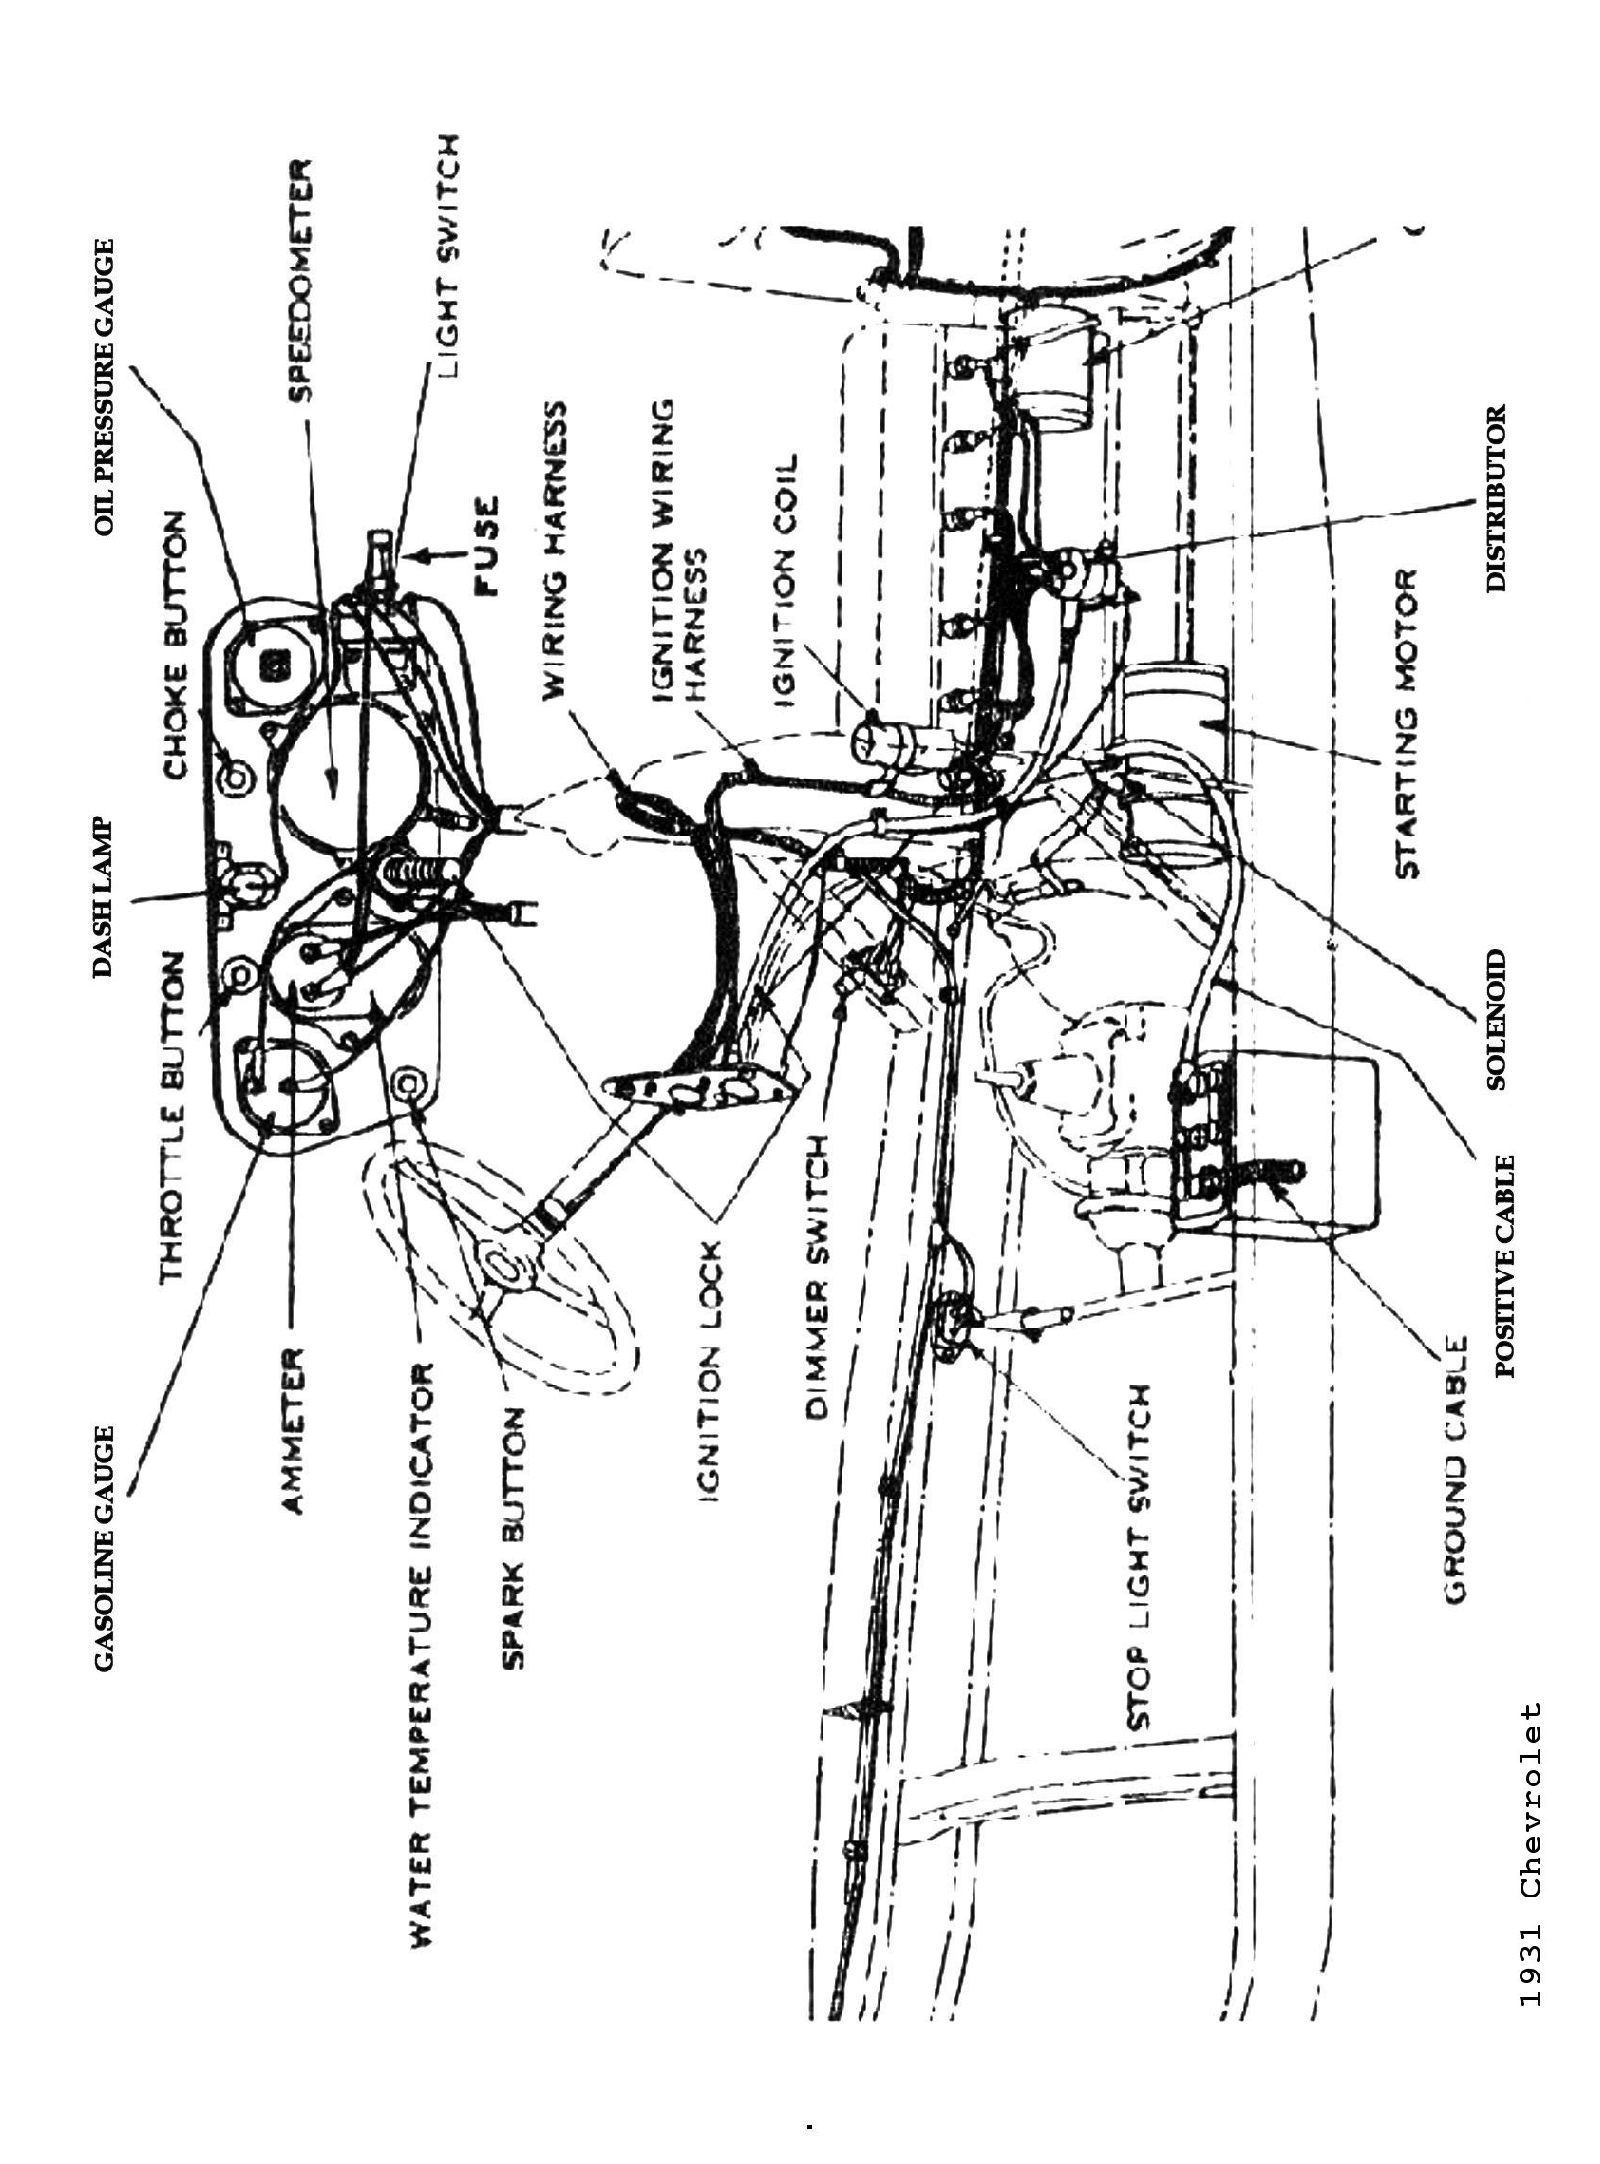 [DIAGRAM] 1956 Chevy Wiring Harness Diagram FULL Version